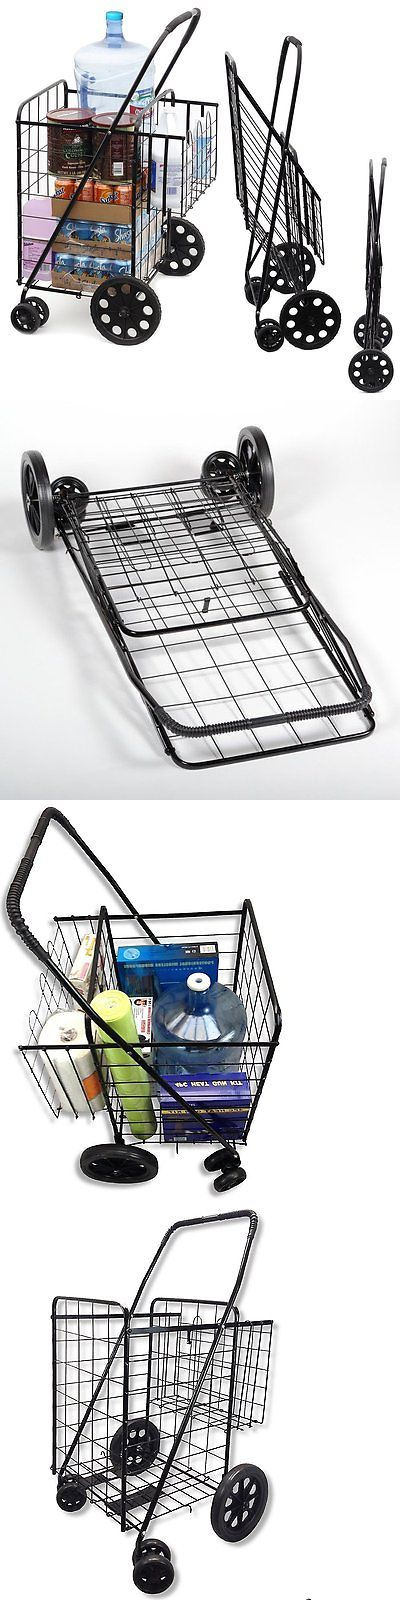 Laundry Bags 43516: Wellmax Wm99017s Double Basket Folding Shopping Cart With Swivel Wheels, Black -> BUY IT NOW ONLY: $48.17 on eBay!